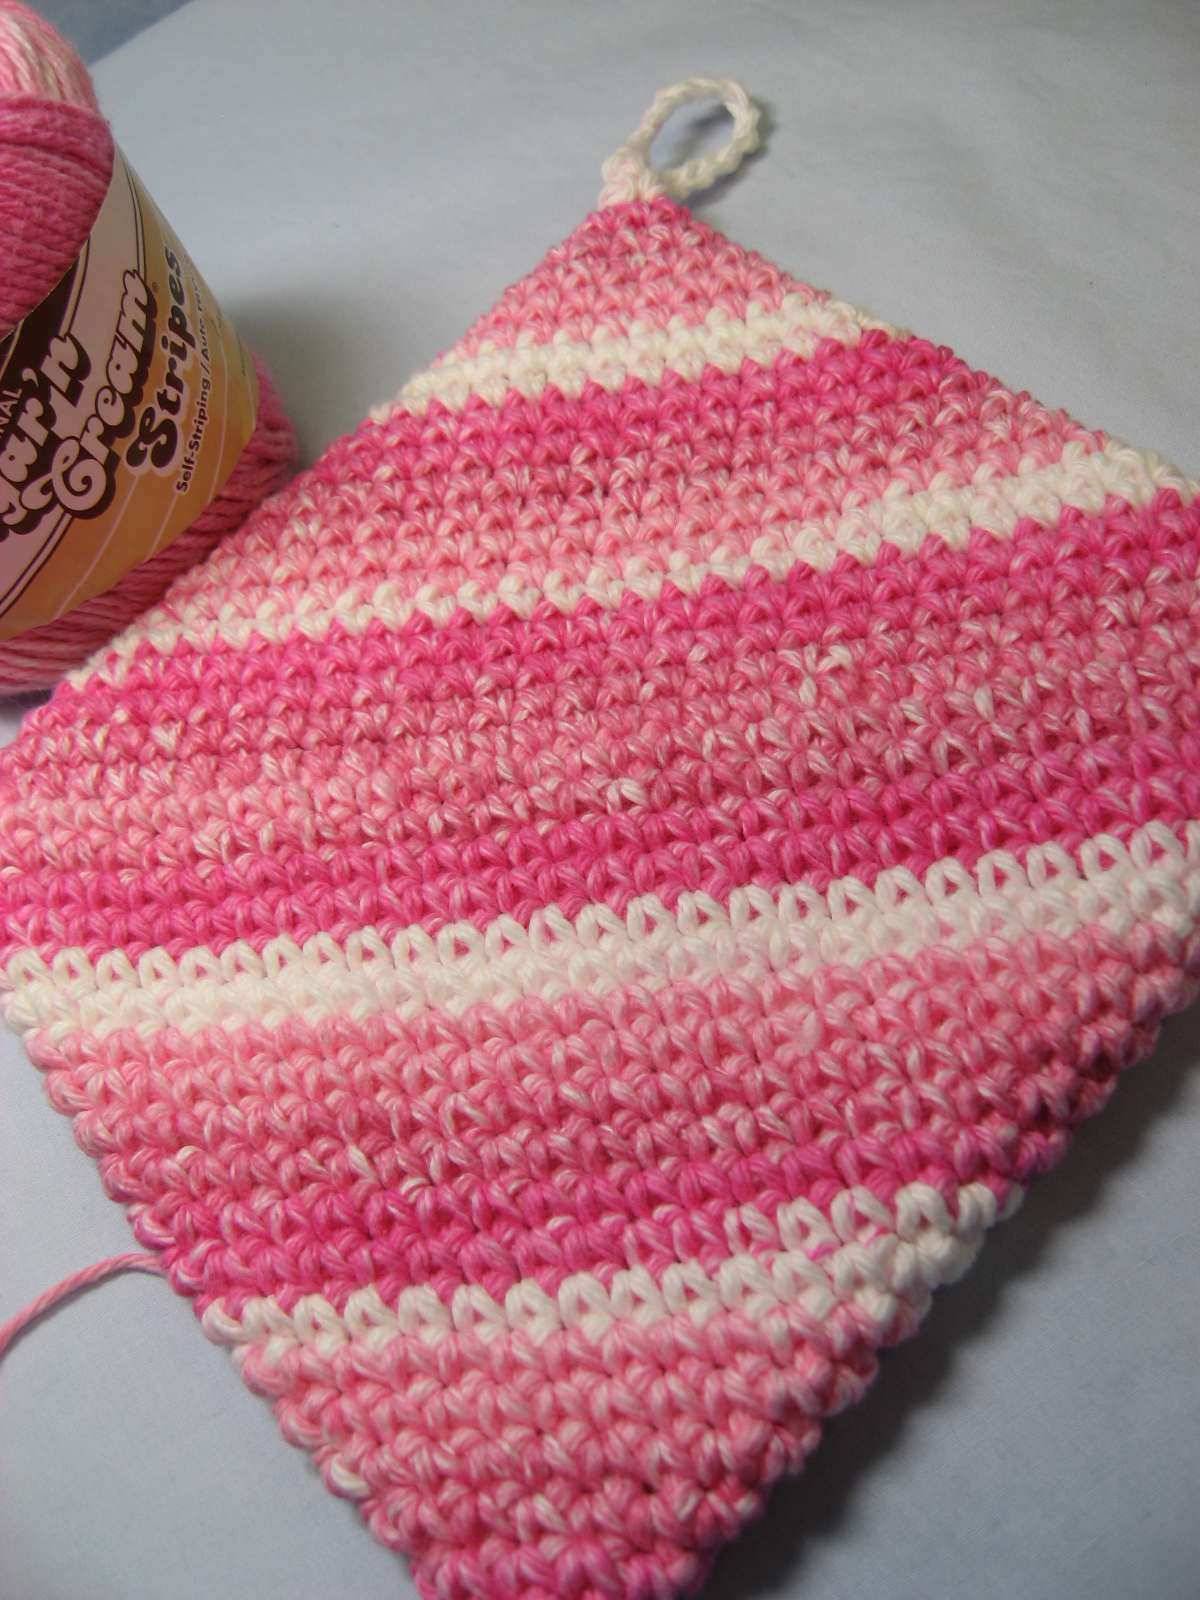 Hooked on Needles: Crocheted Hot Pad/Potholder - Its double thick!